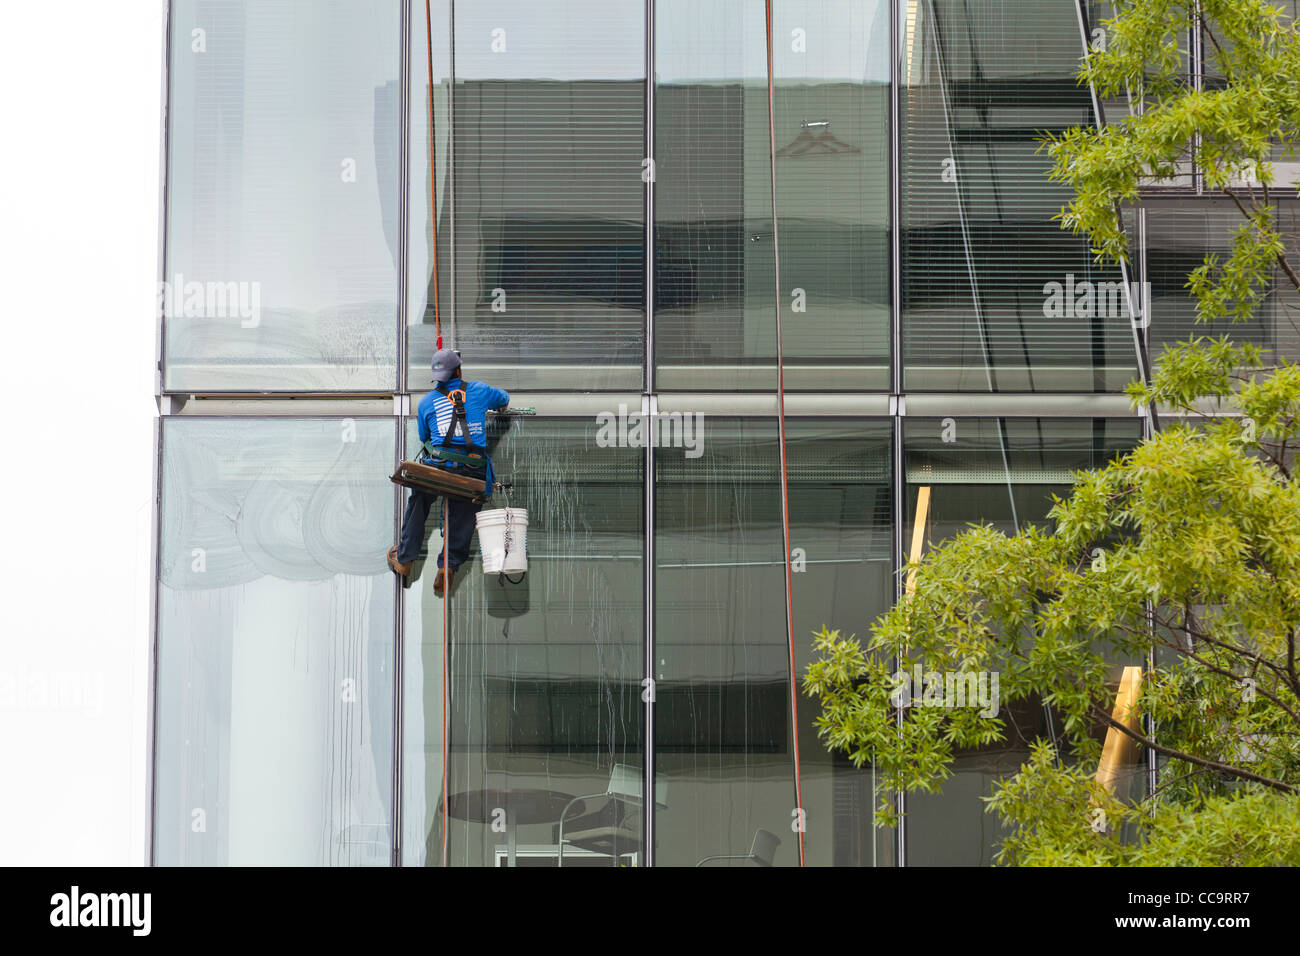 High rise window cleaner sitting in a bosunu0027s chair & High rise window cleaner sitting in a bosunu0027s chair Stock Photo ...